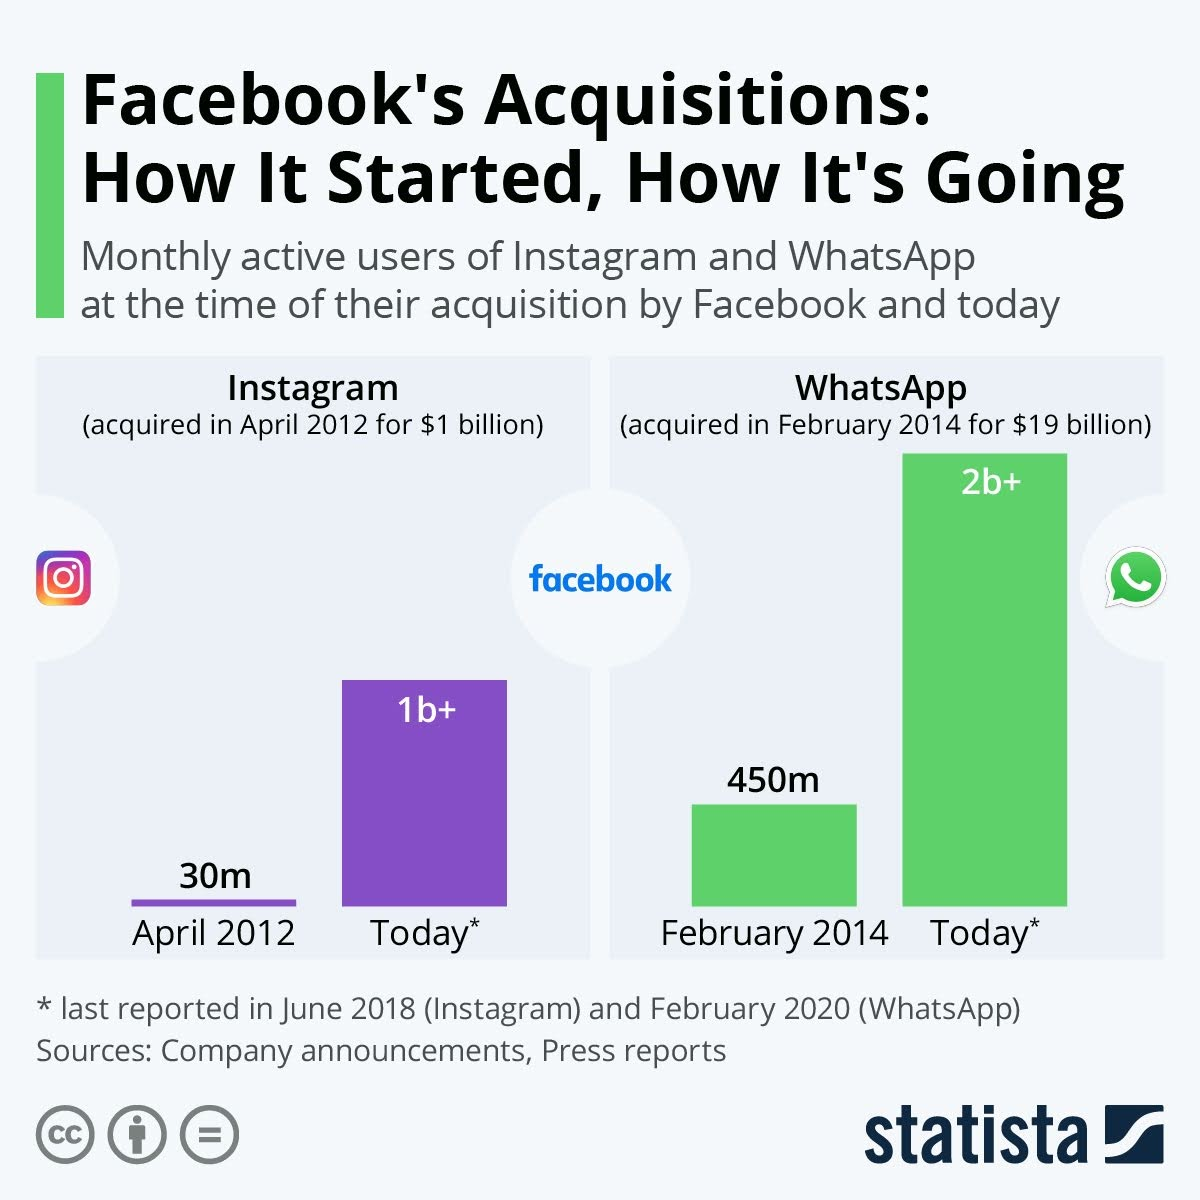 facebooks-acquisitions-how-it-started-how-its-going-infographic